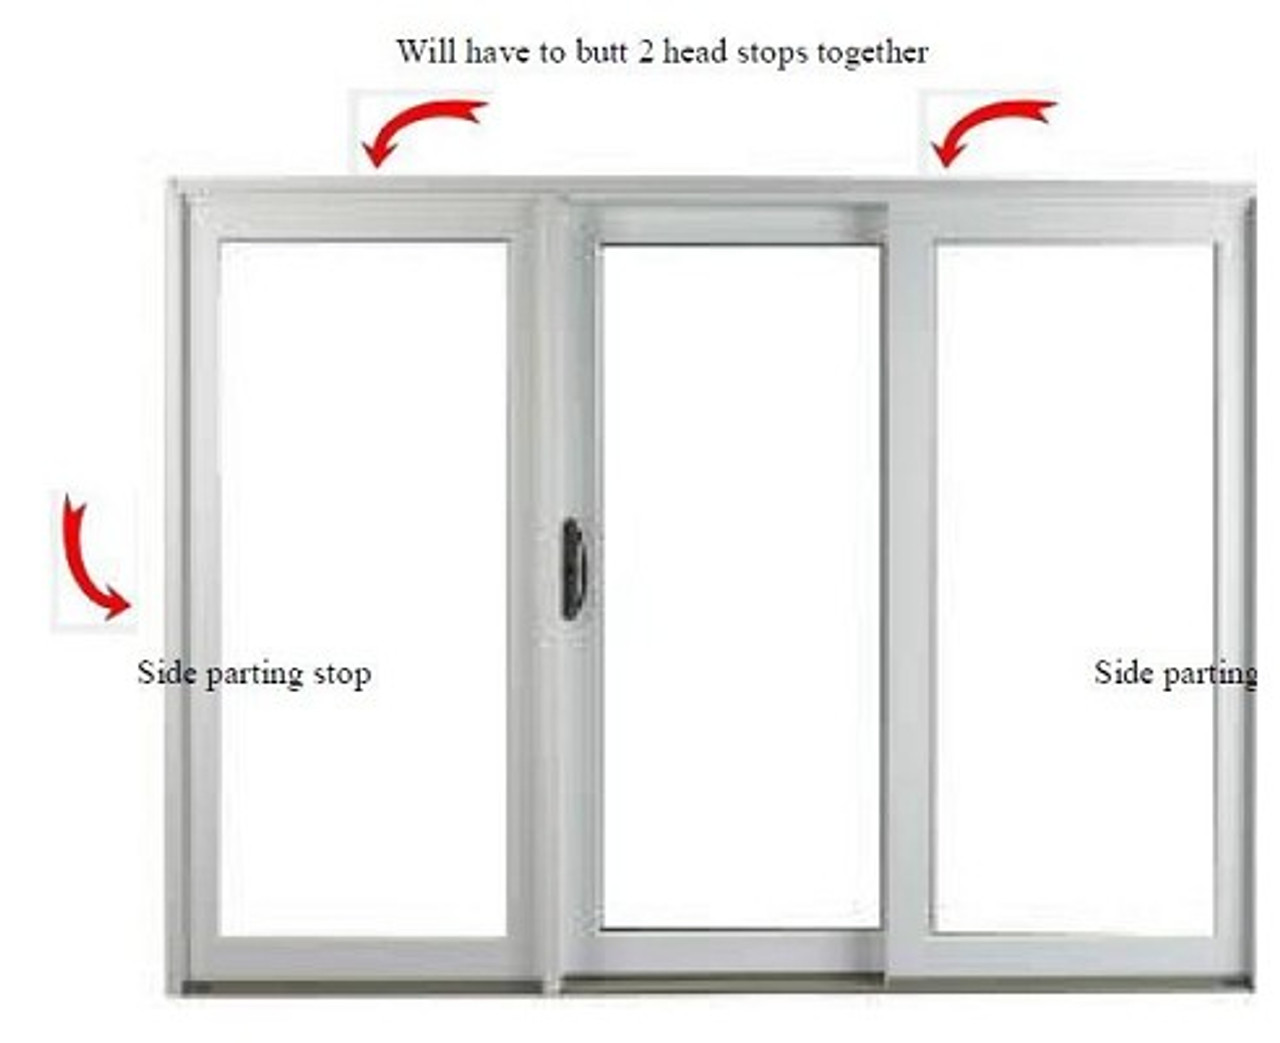 Semco Sliding Door Weather Strip Kit For 8ft To 16ft Wide And 8ft Tall Doors 1996 To Present Includes 4 93 58 2166544 Parting Stop Weather Strips